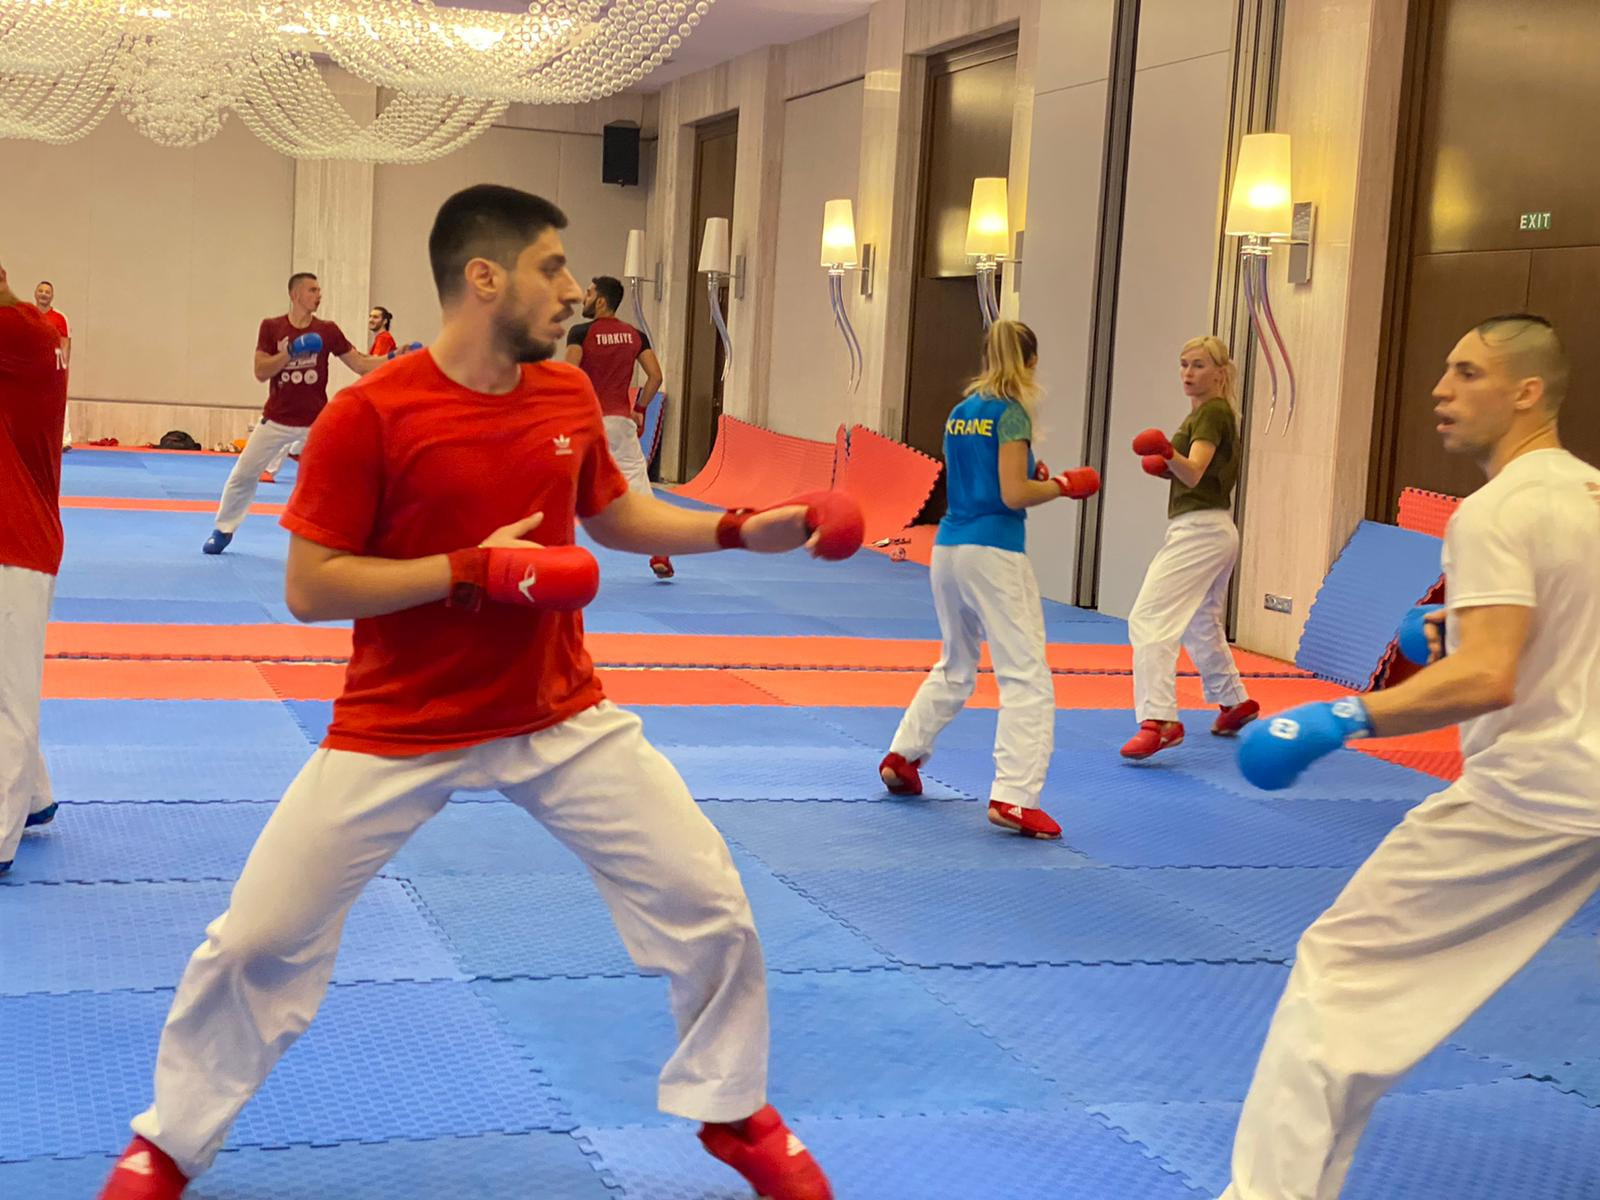 Some of the athletes involved were training for the postponed Tokyo 2020 Olympic Games ©TKF